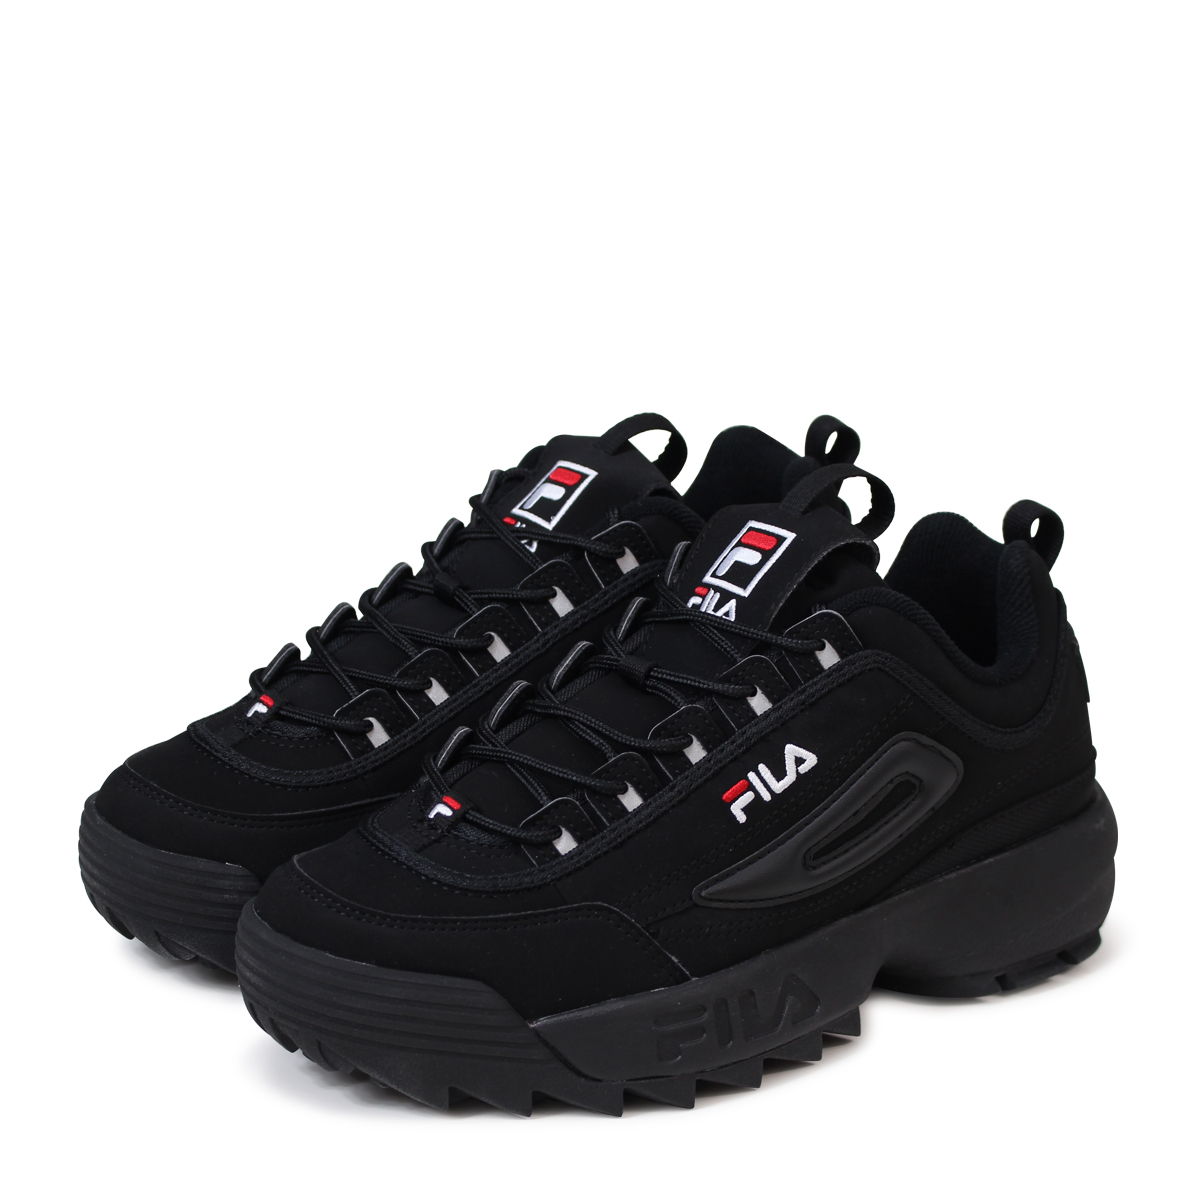 Black Filas Sneakers : Balenciaga & FILA Shoes for Men